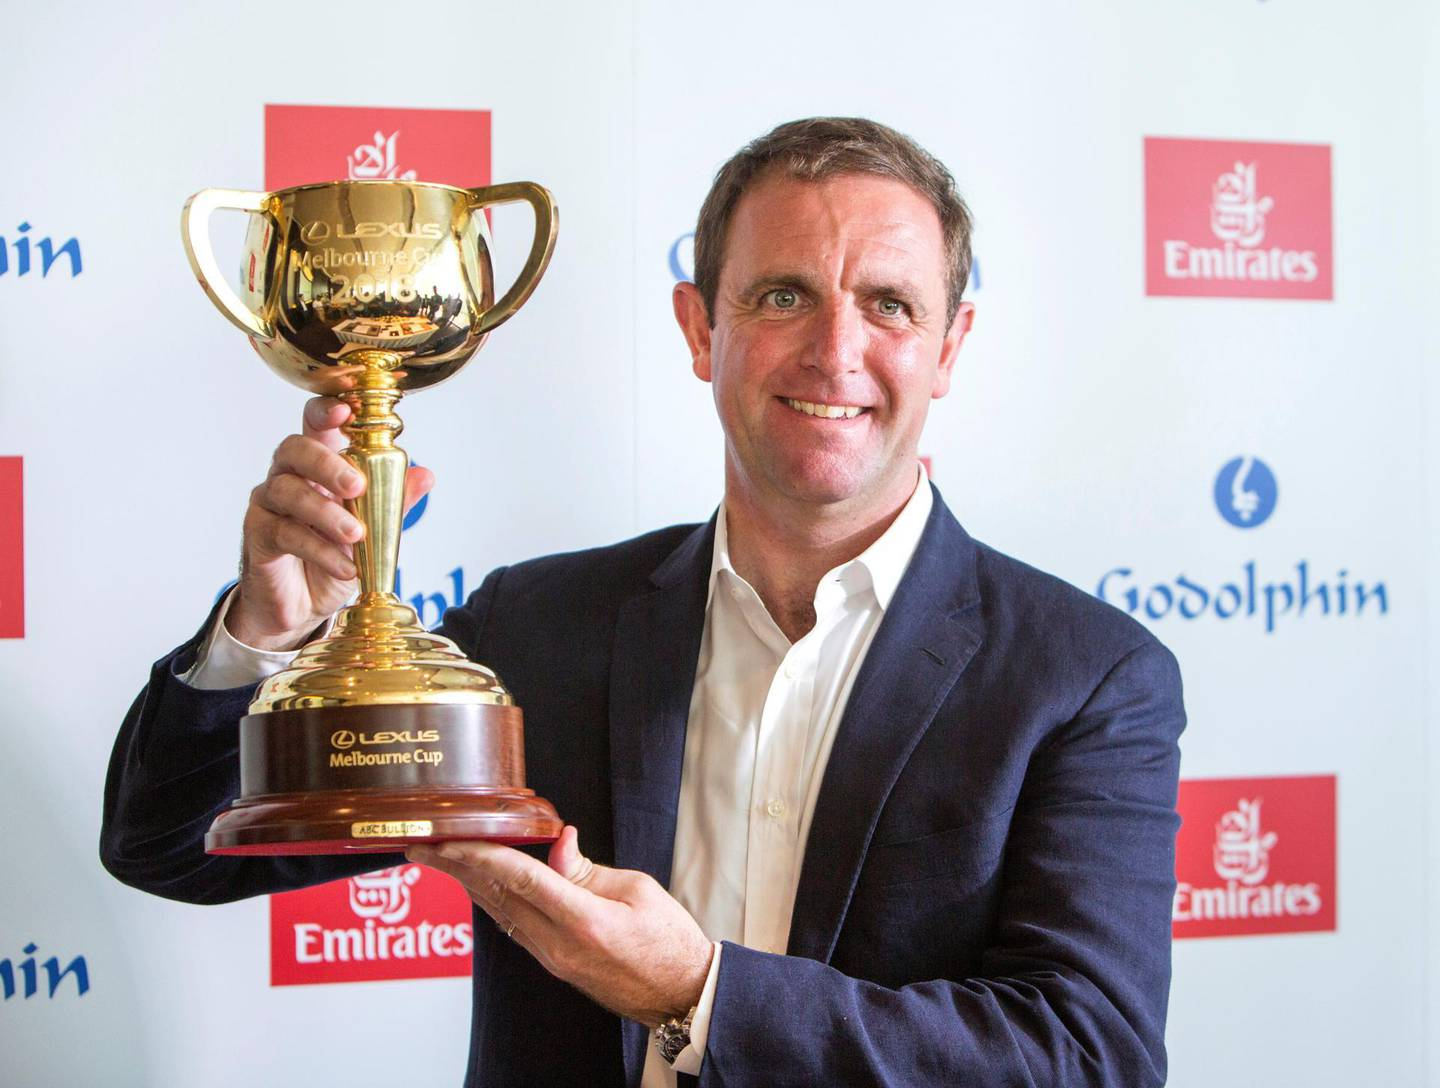 DUBAI, UNITED ARAB EMIRATES - Goldolphin trainerCharlie Appleby who saddled the Melbourne Cup winner Cross Counter at his press conference at Emirates Tower, Dubai.  Leslie Pableo for The National for Amith Pasella���s story